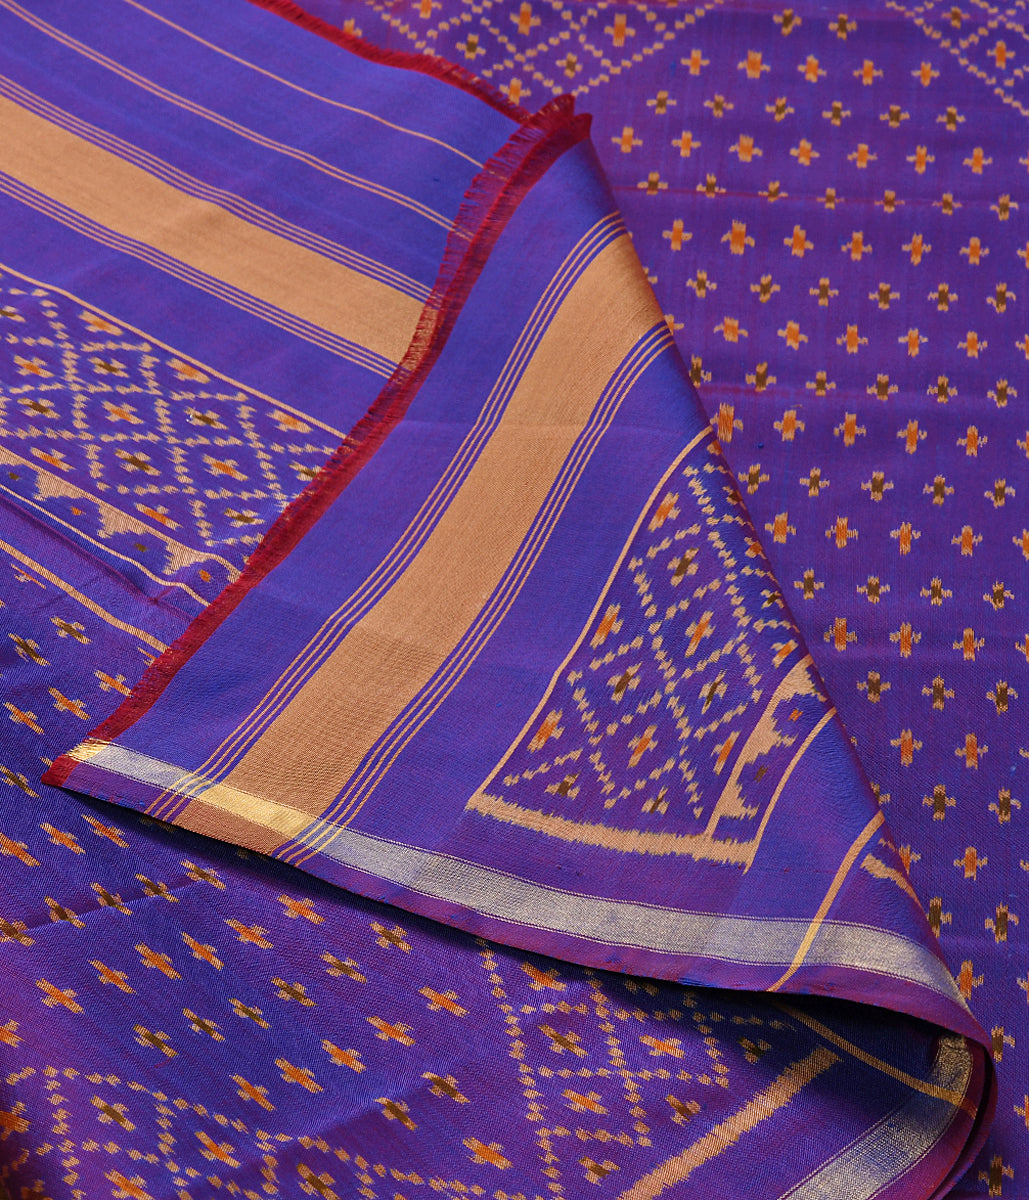 Handwoven Single Ikat Patola Dupatta in Purple